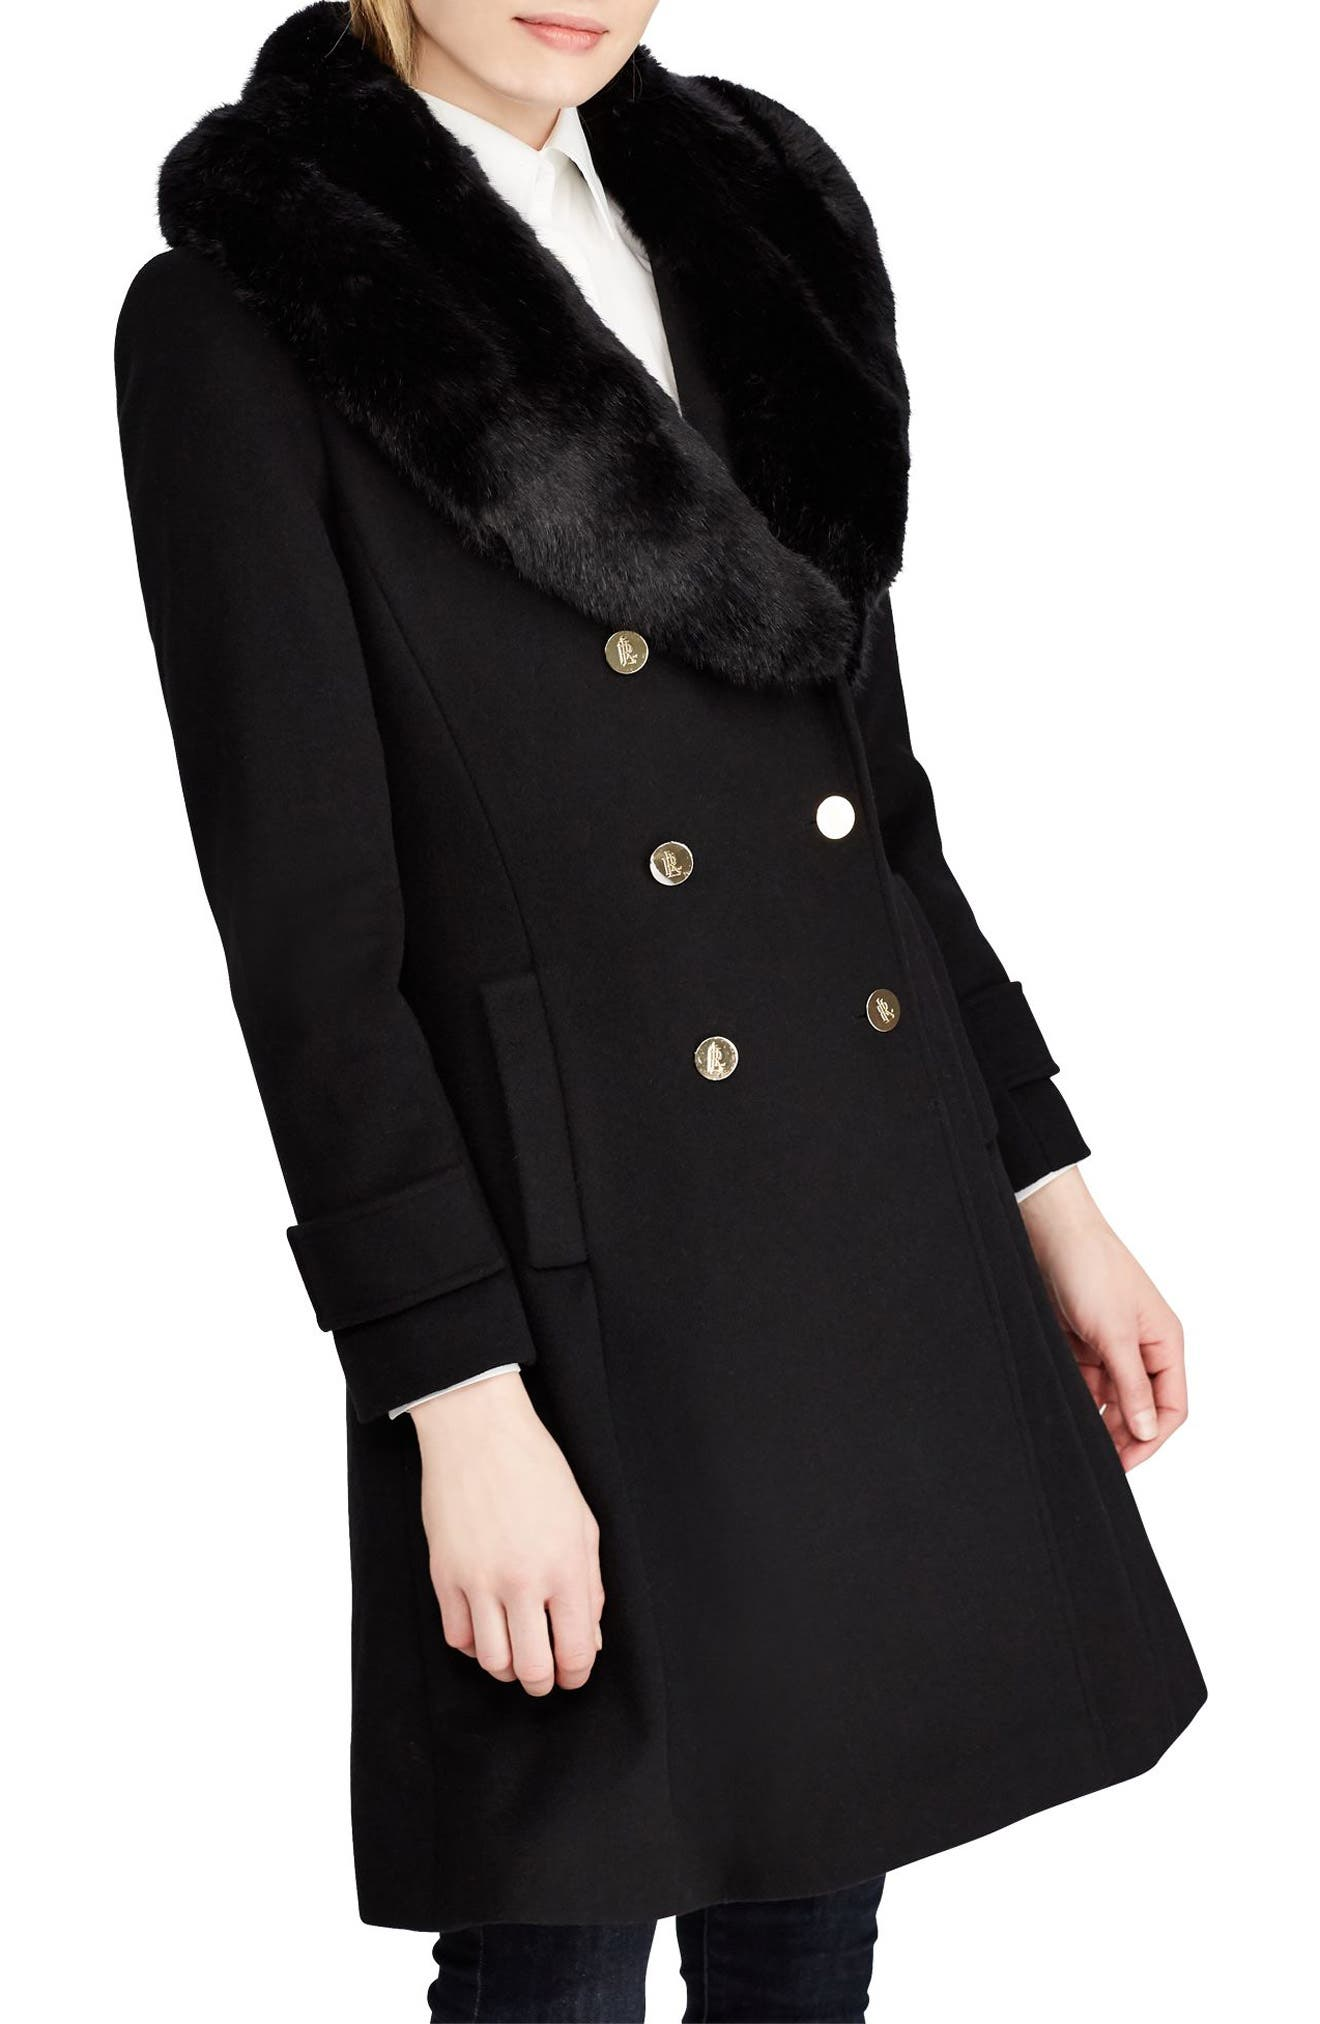 LAUREN RALPH LAUREN Wool Blend Coat with Faux Fur Trim, Main, color, BLACK